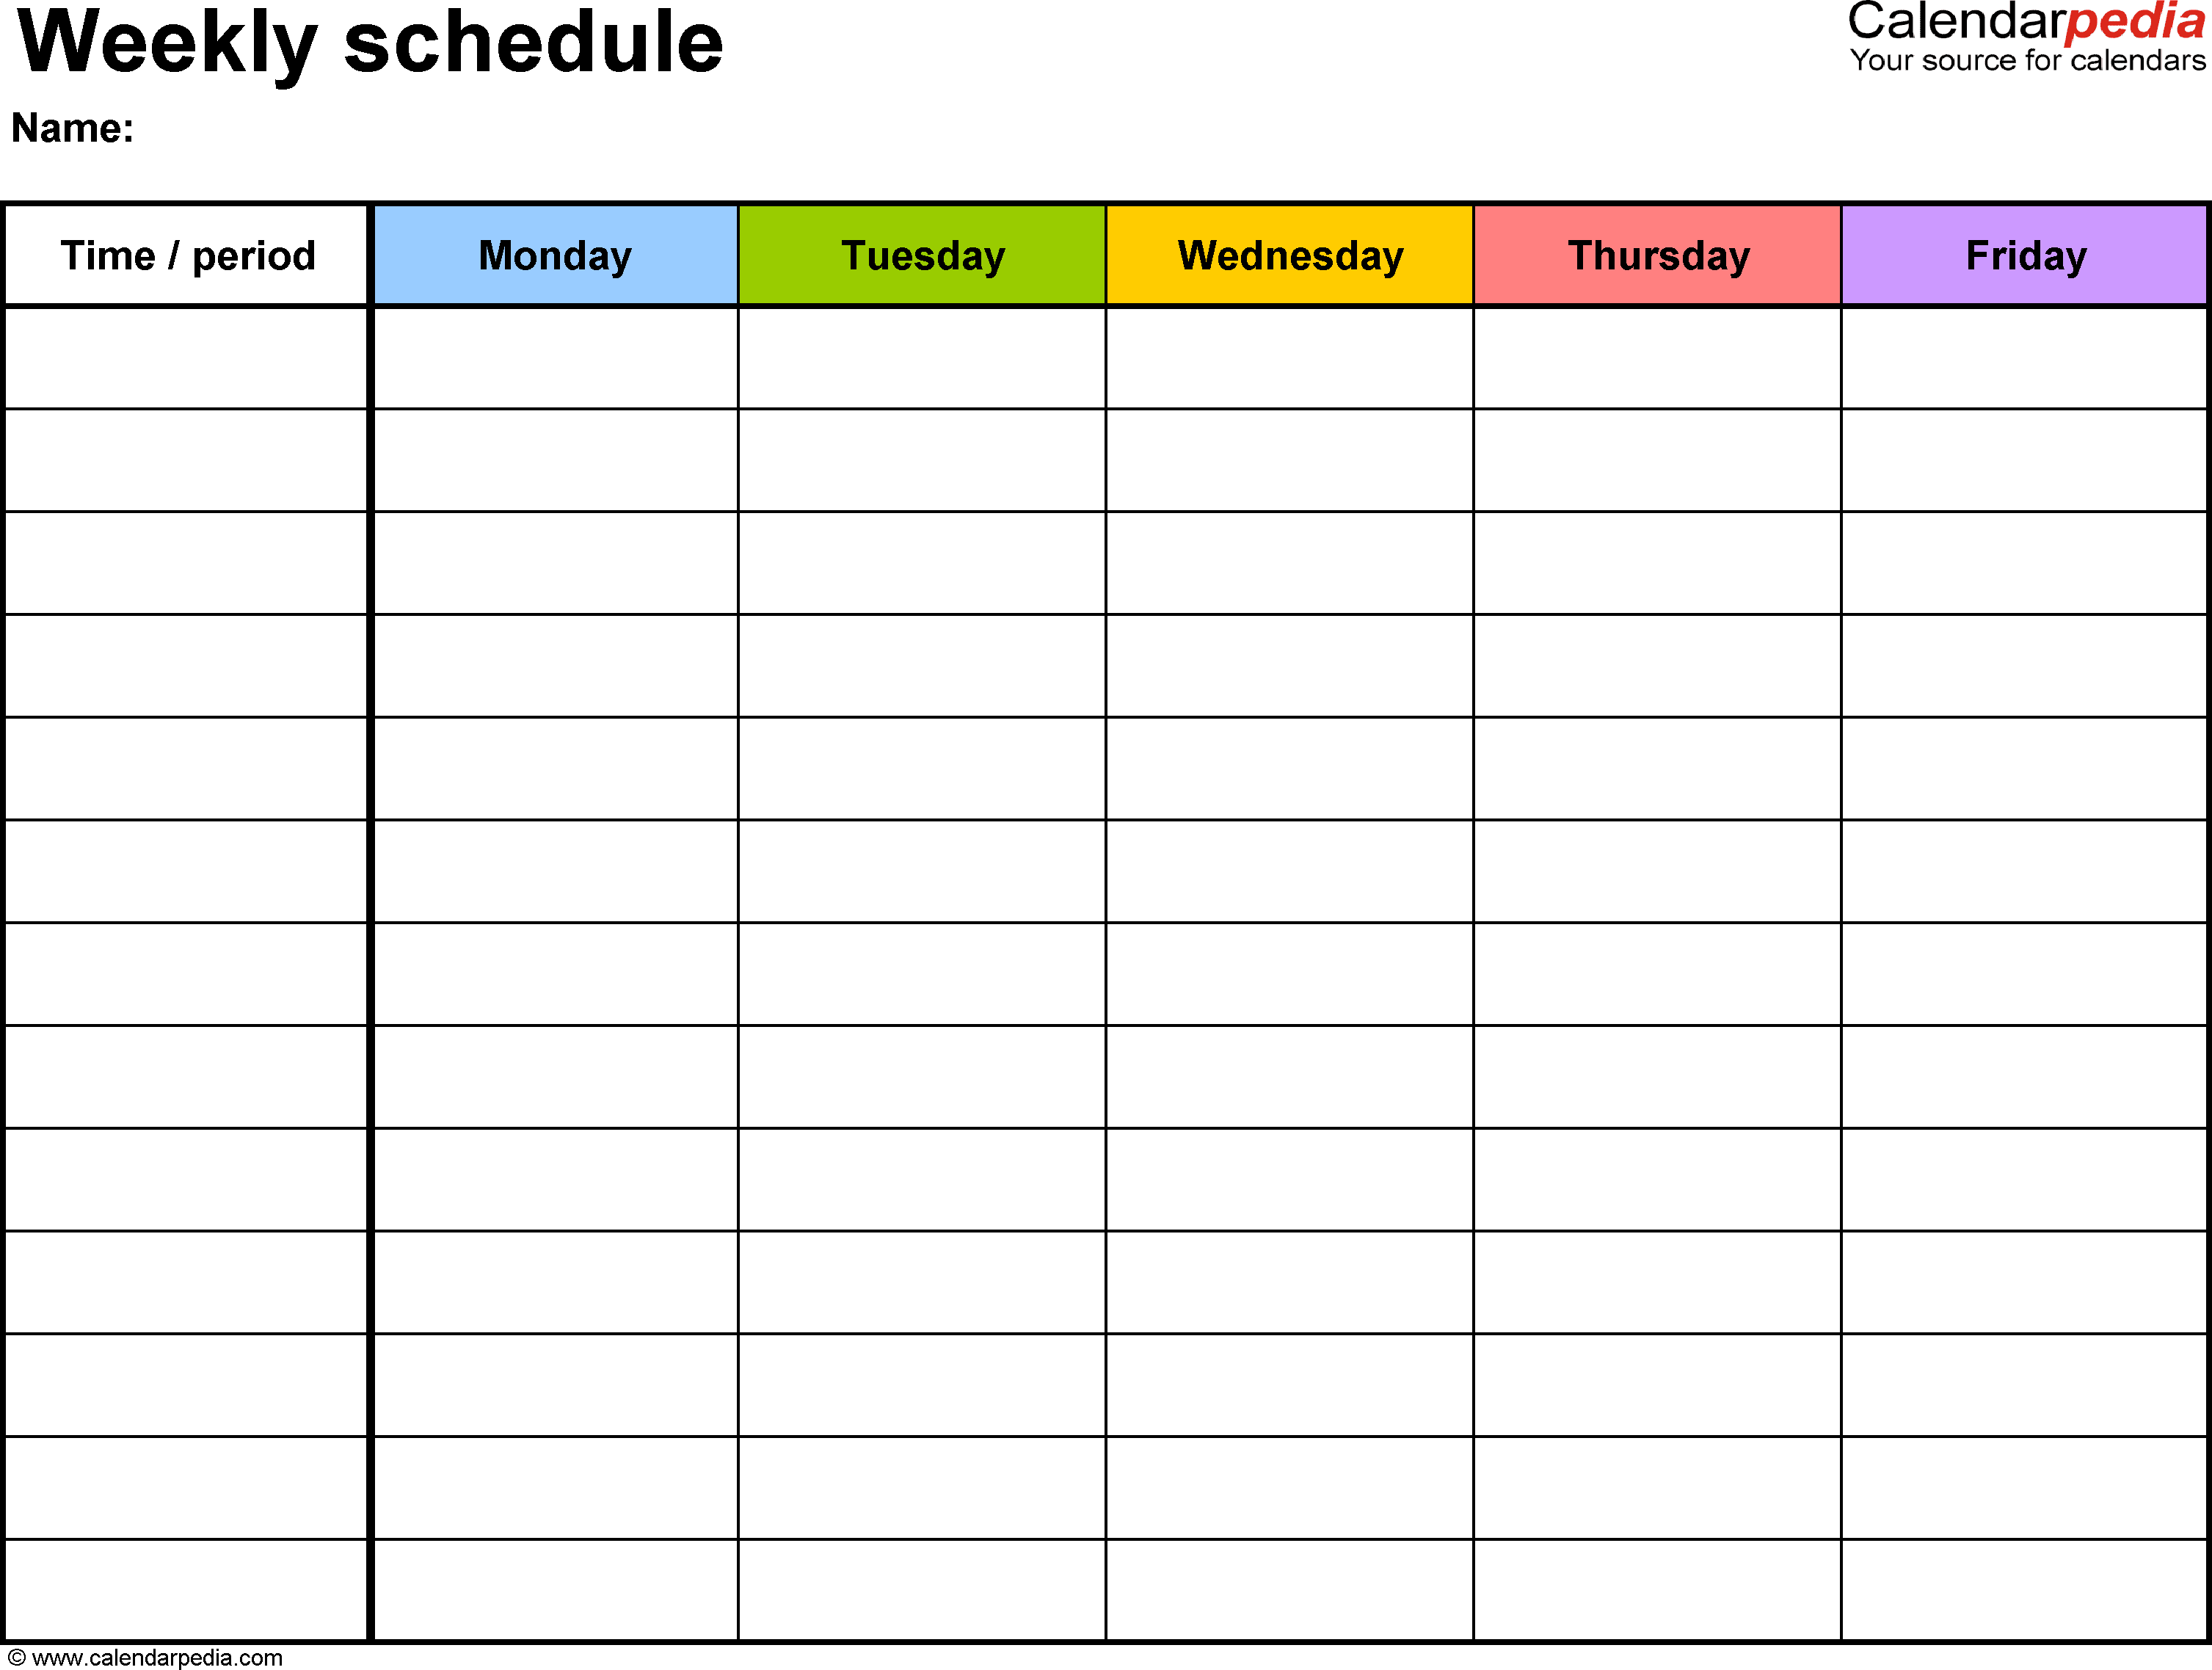 Calendar View Templates : Weekly schedule template for word version landscape